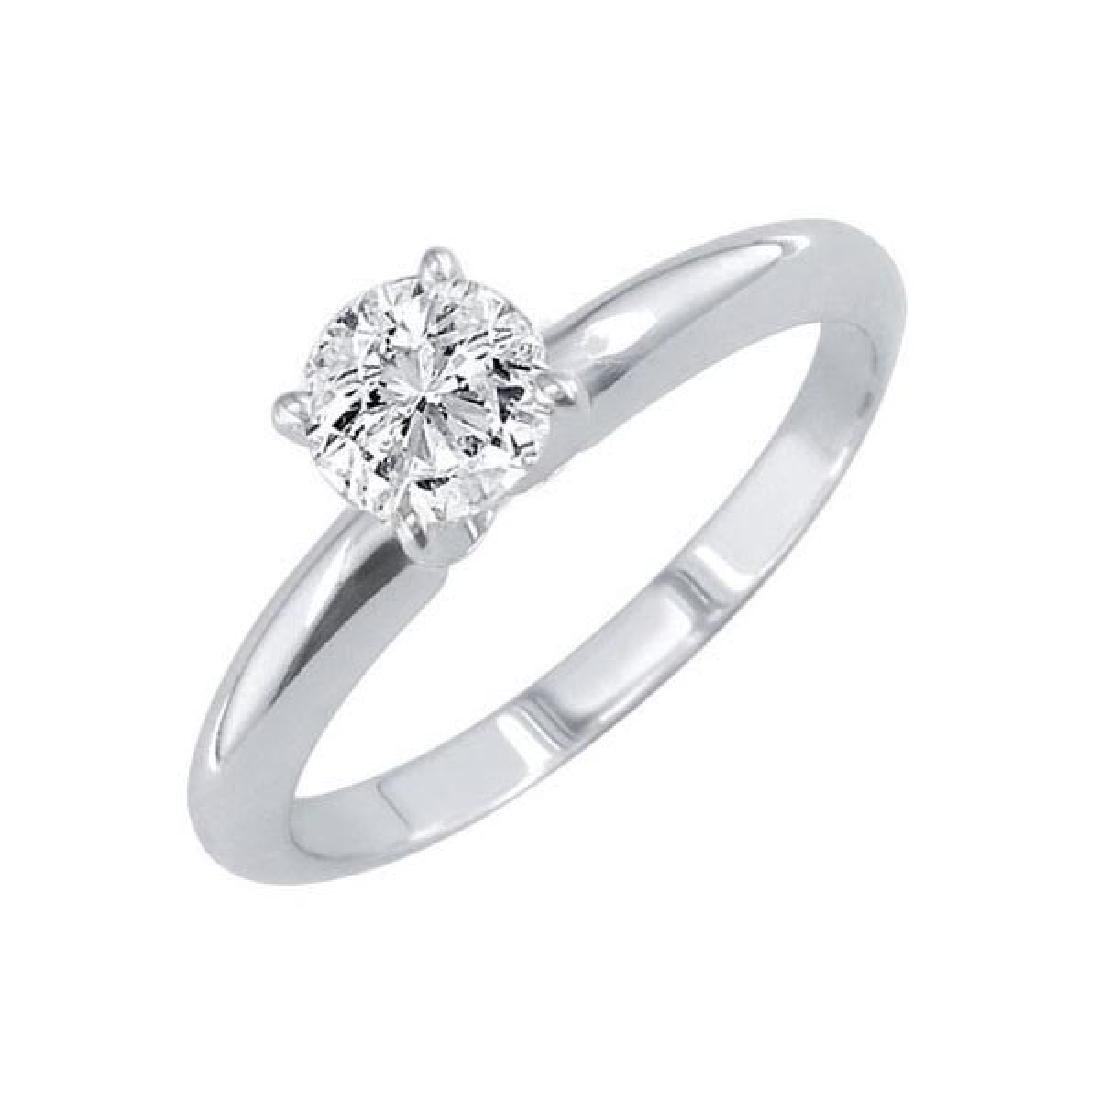 Certified 1.02 CTW Round Diamond Solitaire 14k Ring H/S